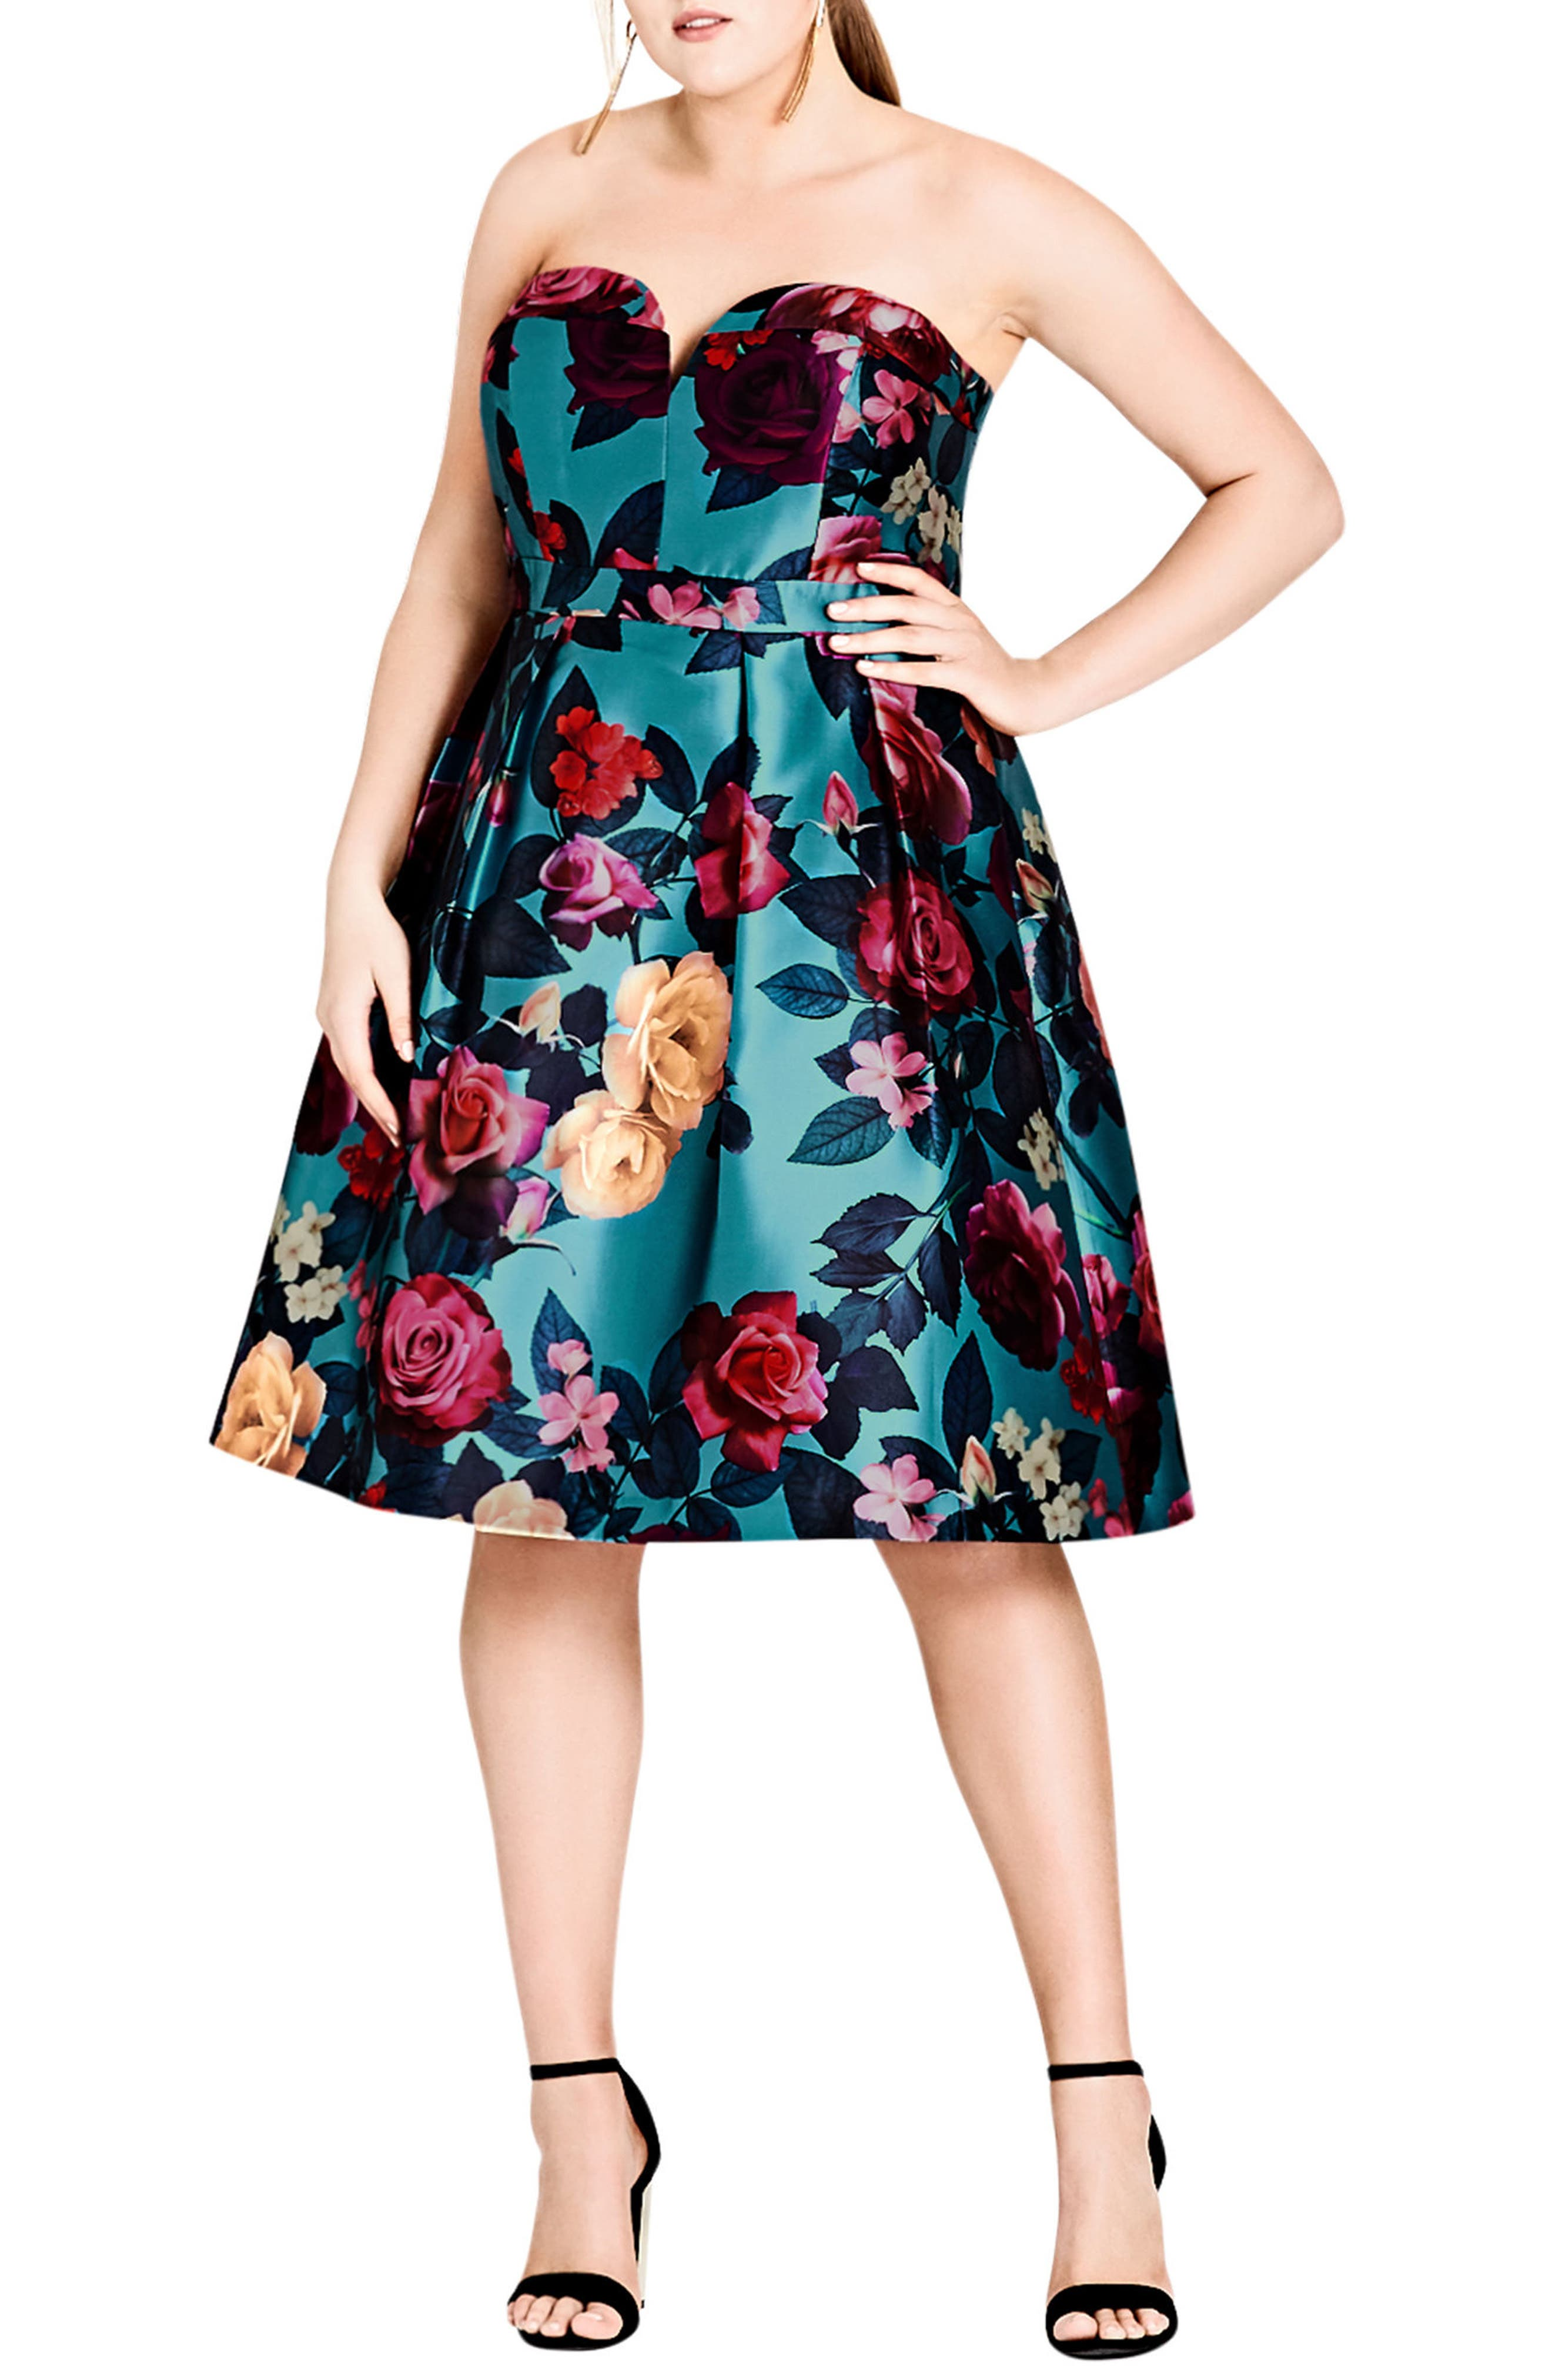 Alternate Image 1 Selected - City Chic Lush Floral Print Fit & Flare Dress (Plus Size)